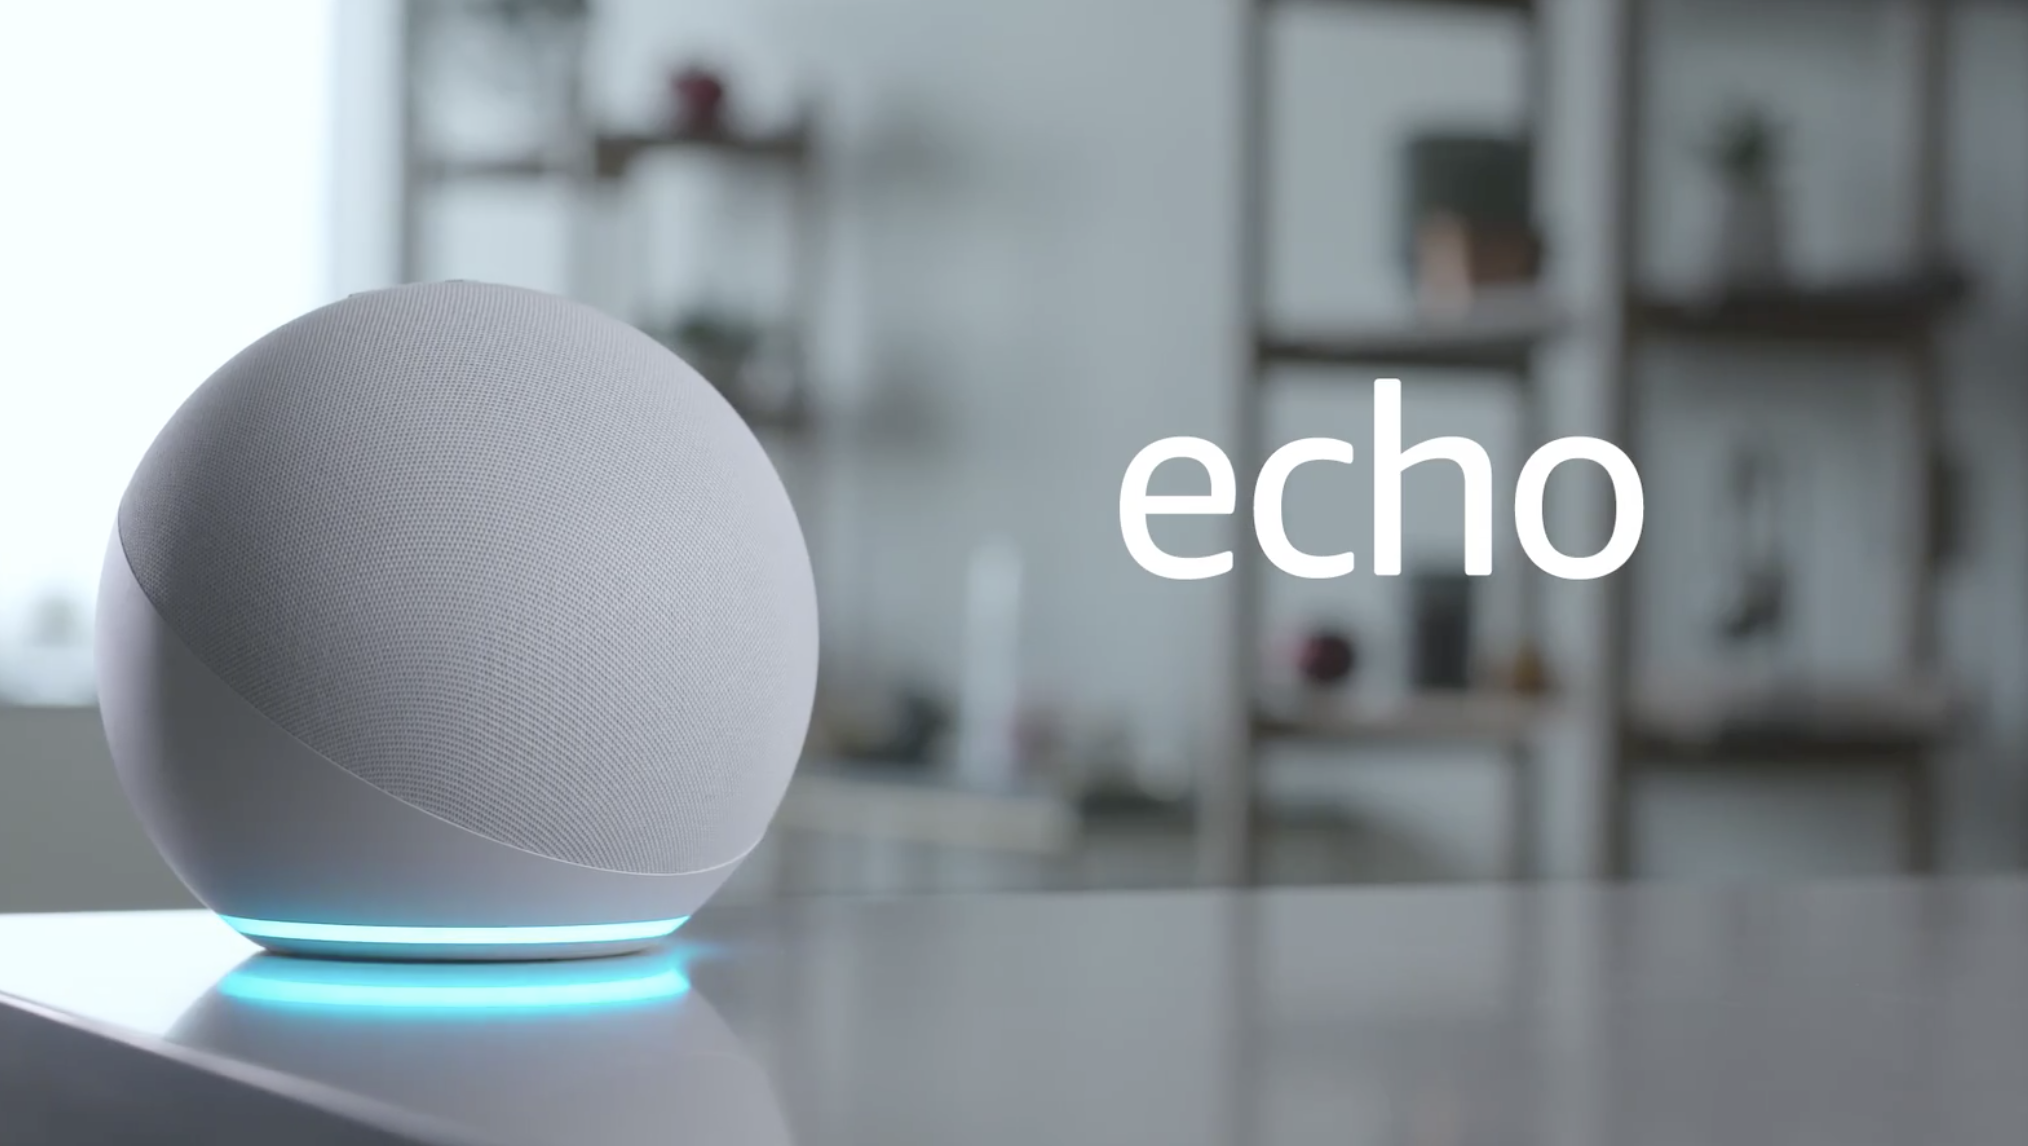 amazon-event-new-echo-2020-2.png